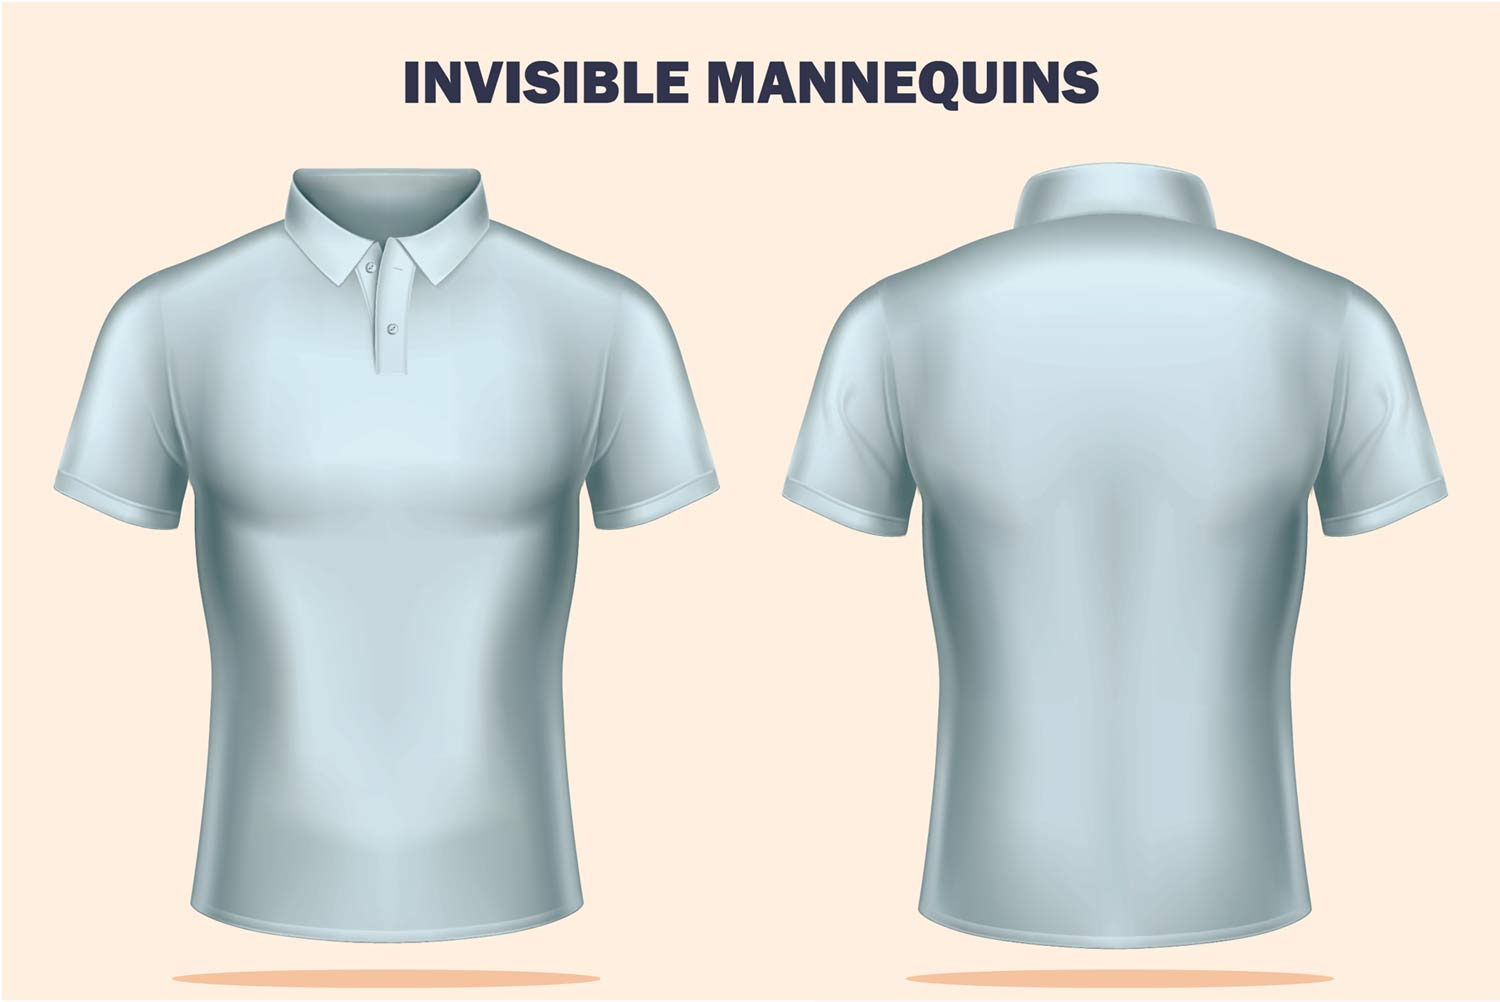 Invisible-mannequins